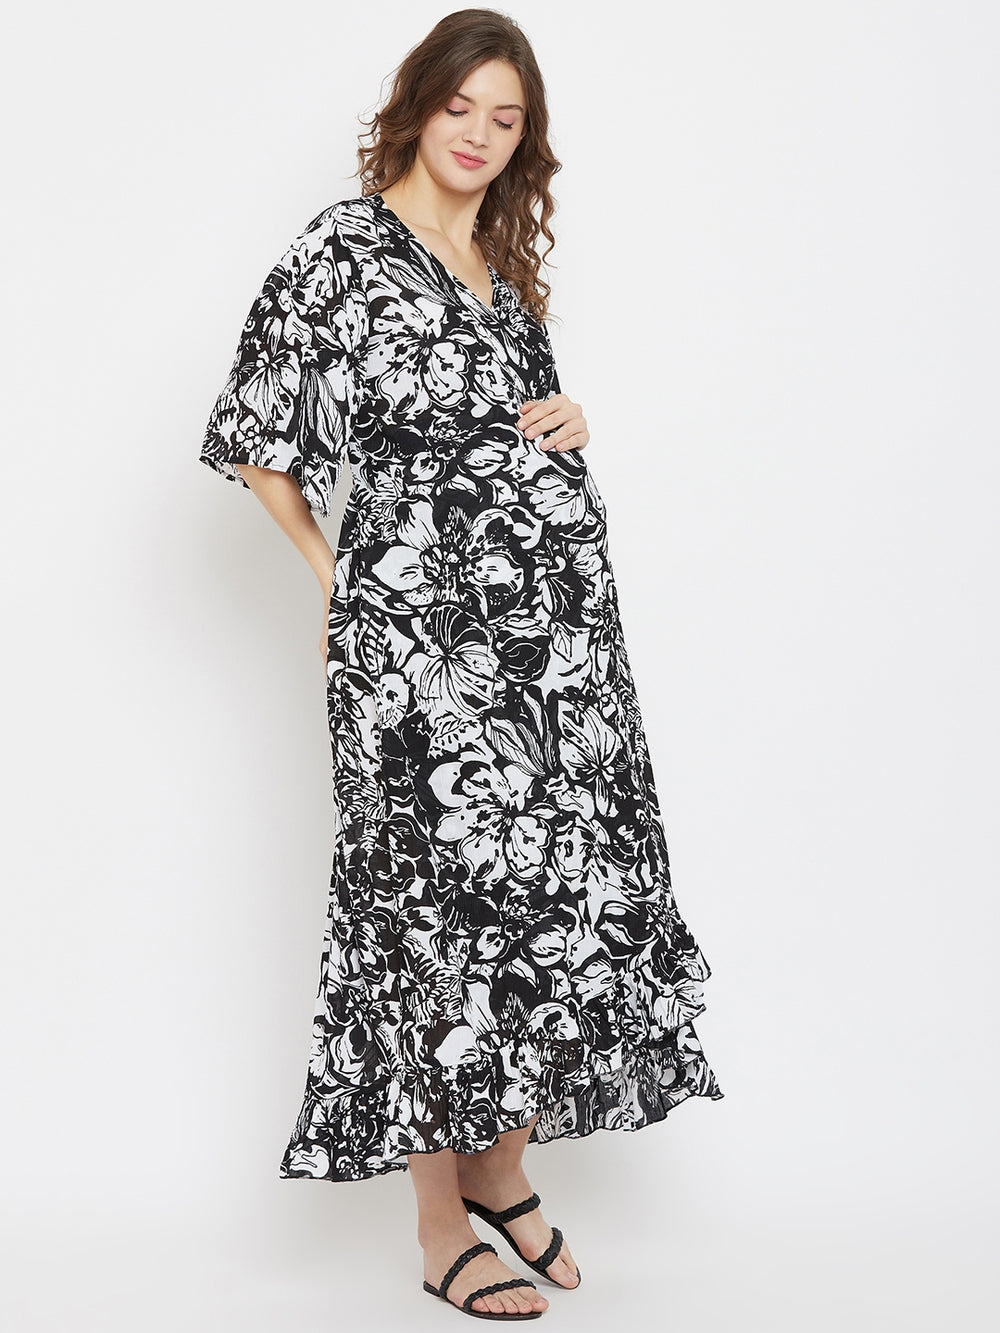 Black and White Printed Viscose Maternity Wrap Dress with Ruffles